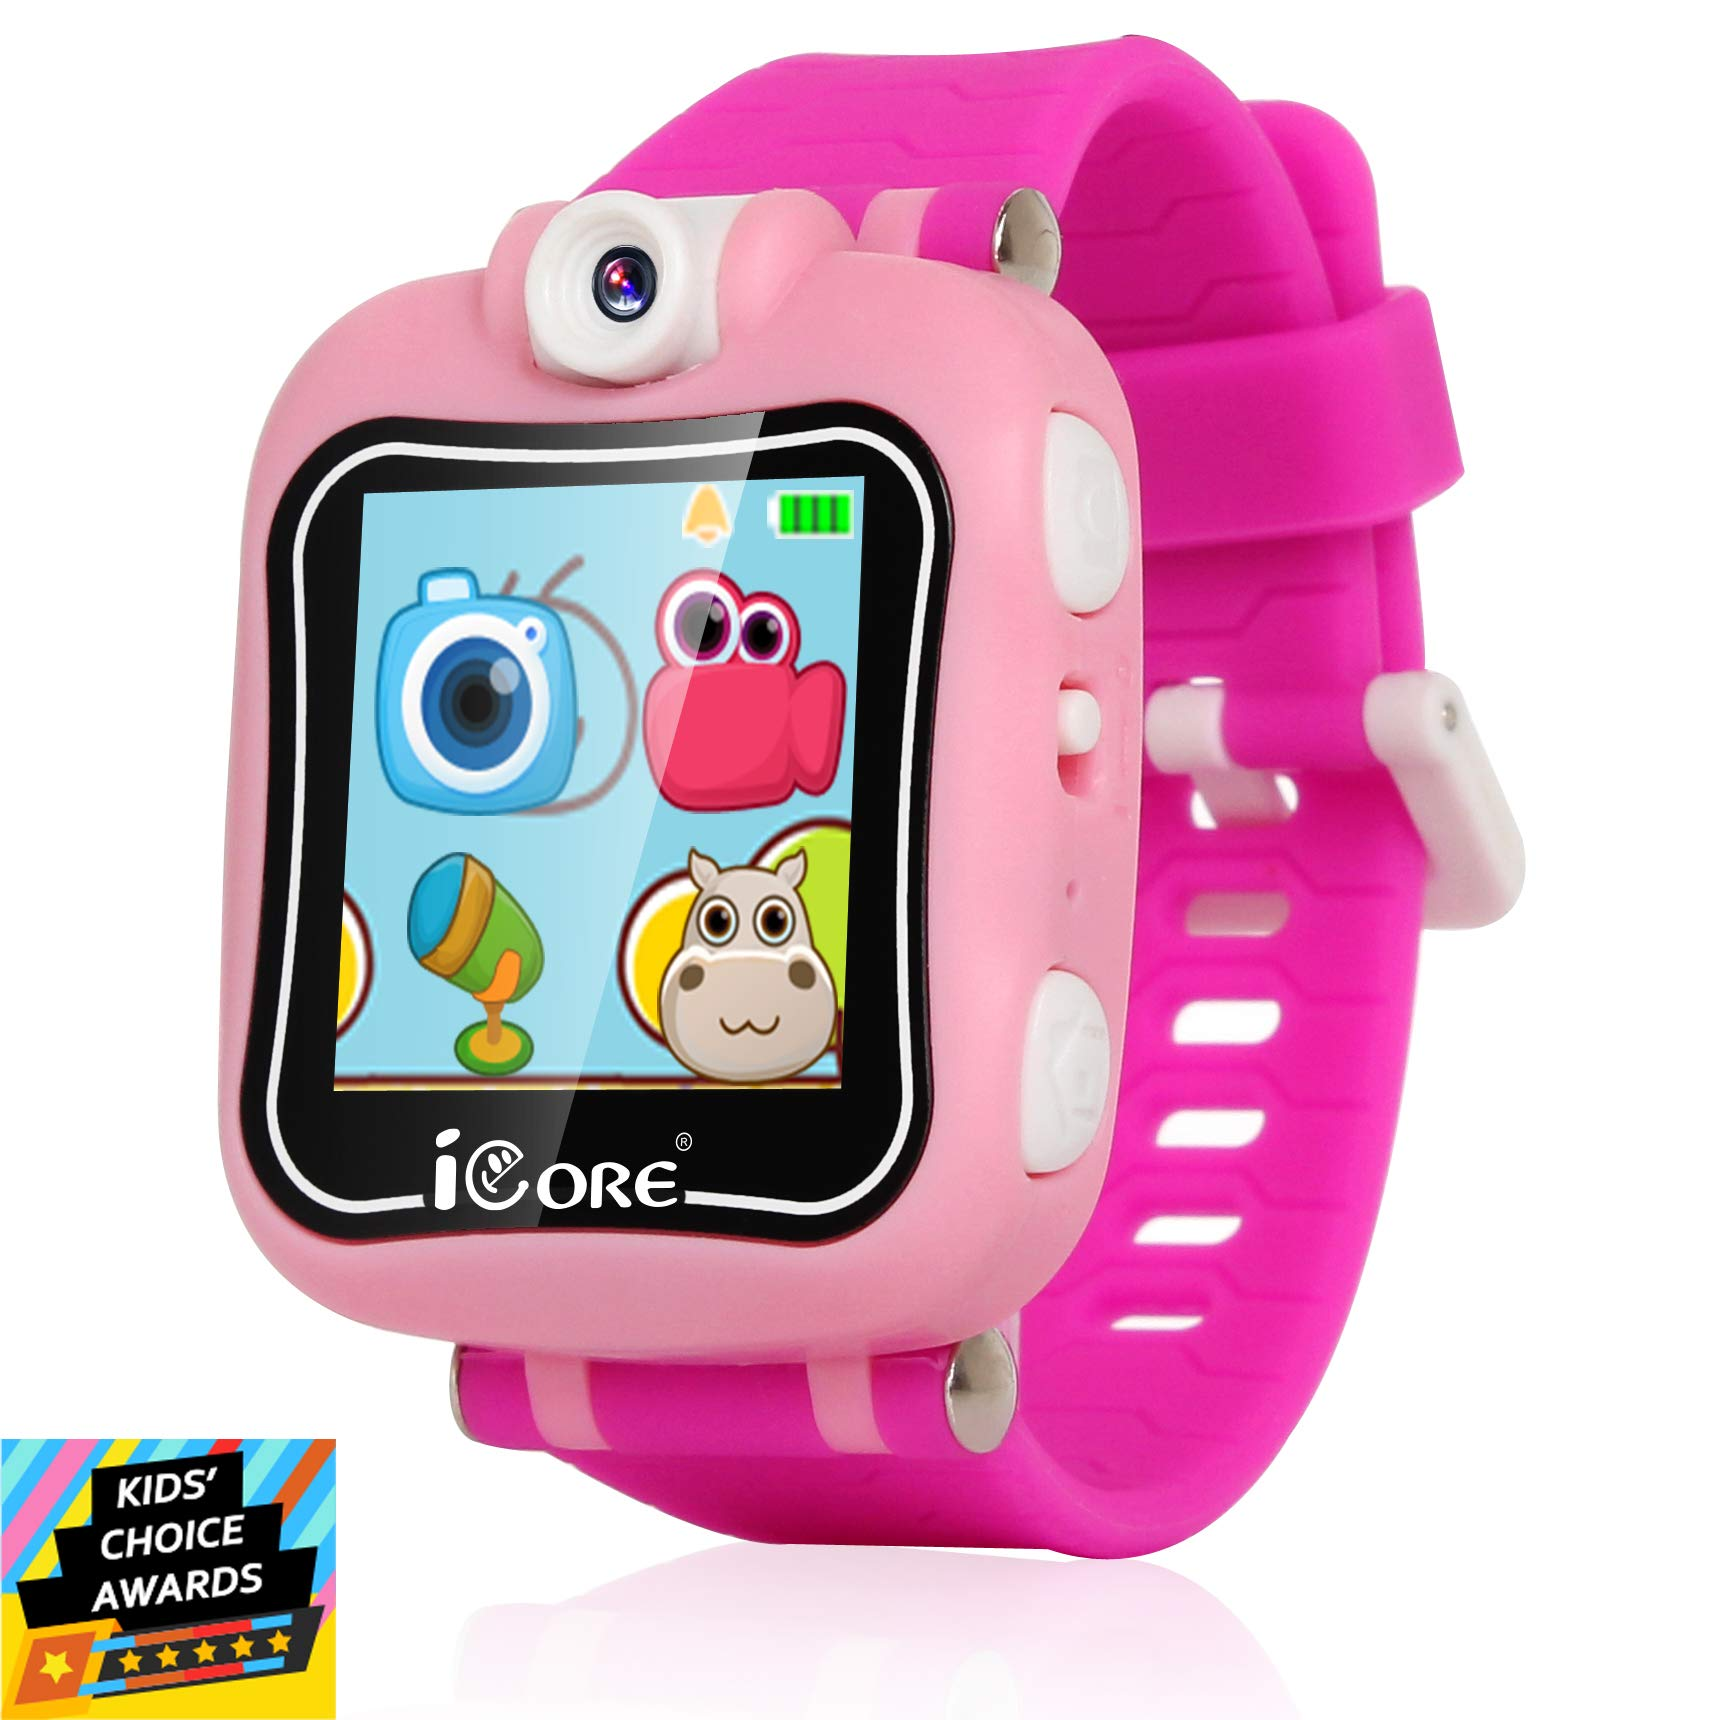 iCore Durable Kids Smartwatch, Electronic Child Smart Watch Video Games, Children Digital Tech Watches, Touch Screen Learning Timer Alarm Clock with Camera for Girls Boys